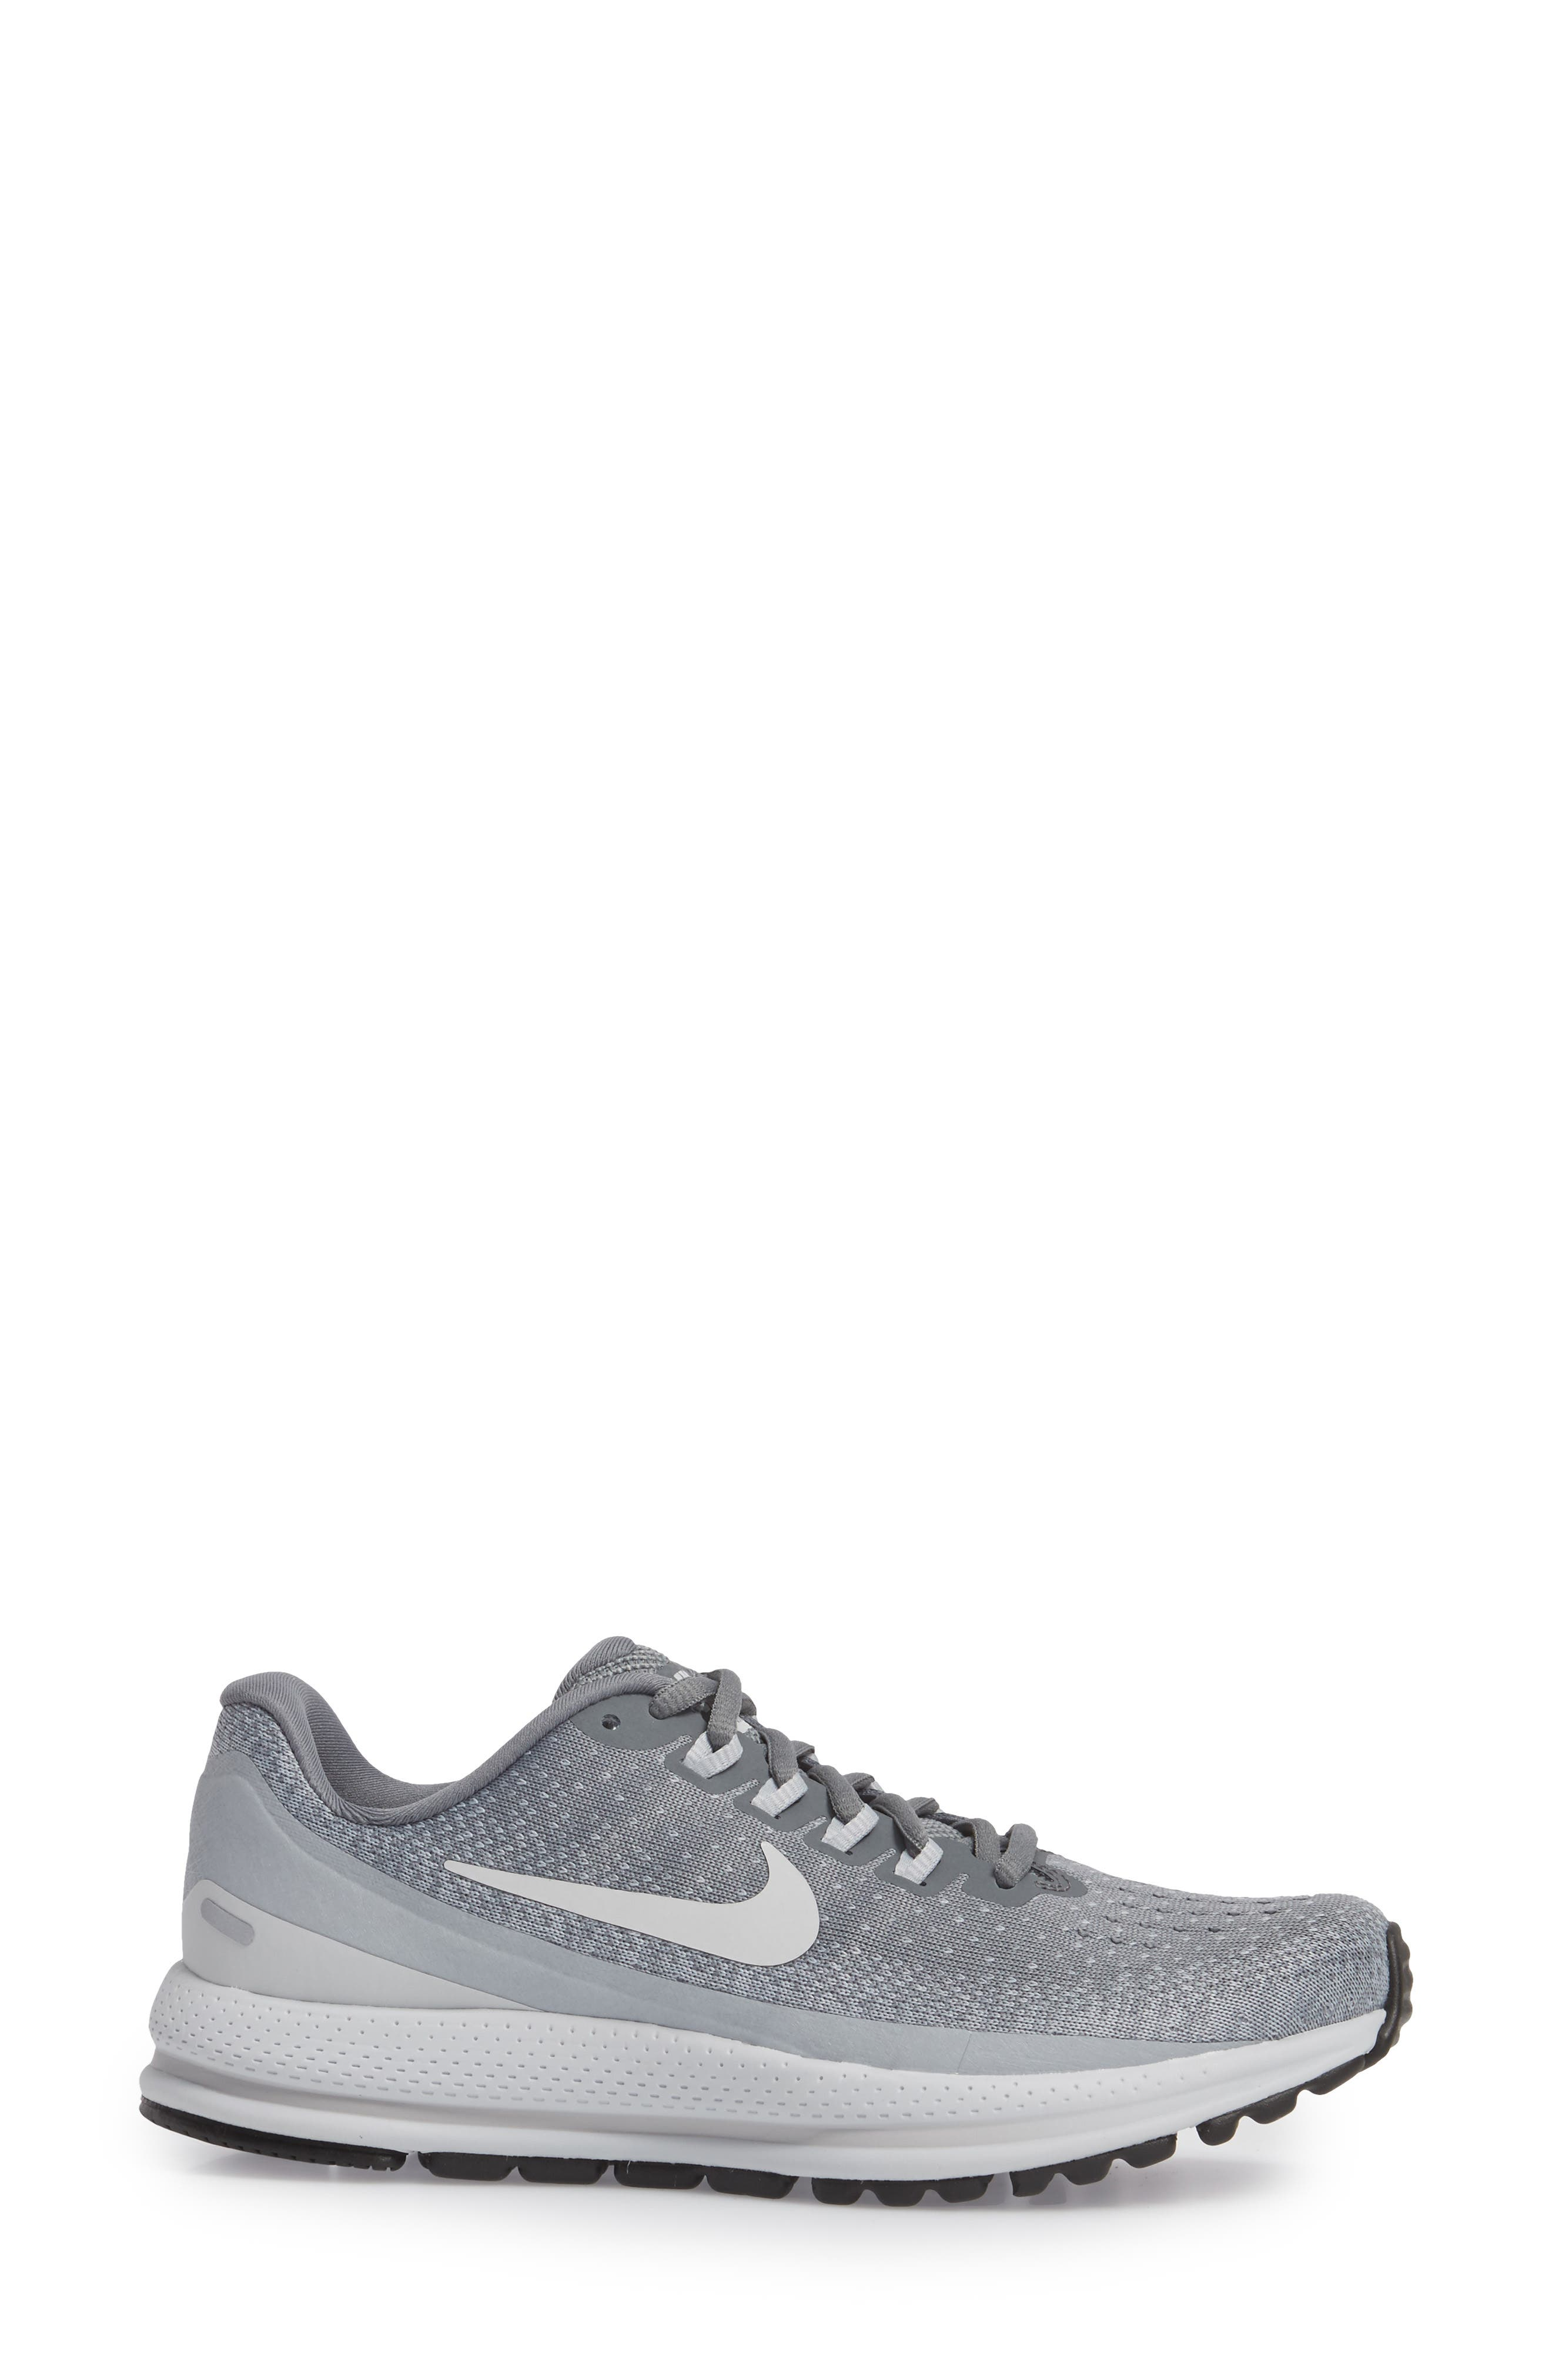 Air Zoom Vomero 13 Running Shoe,                             Alternate thumbnail 23, color,